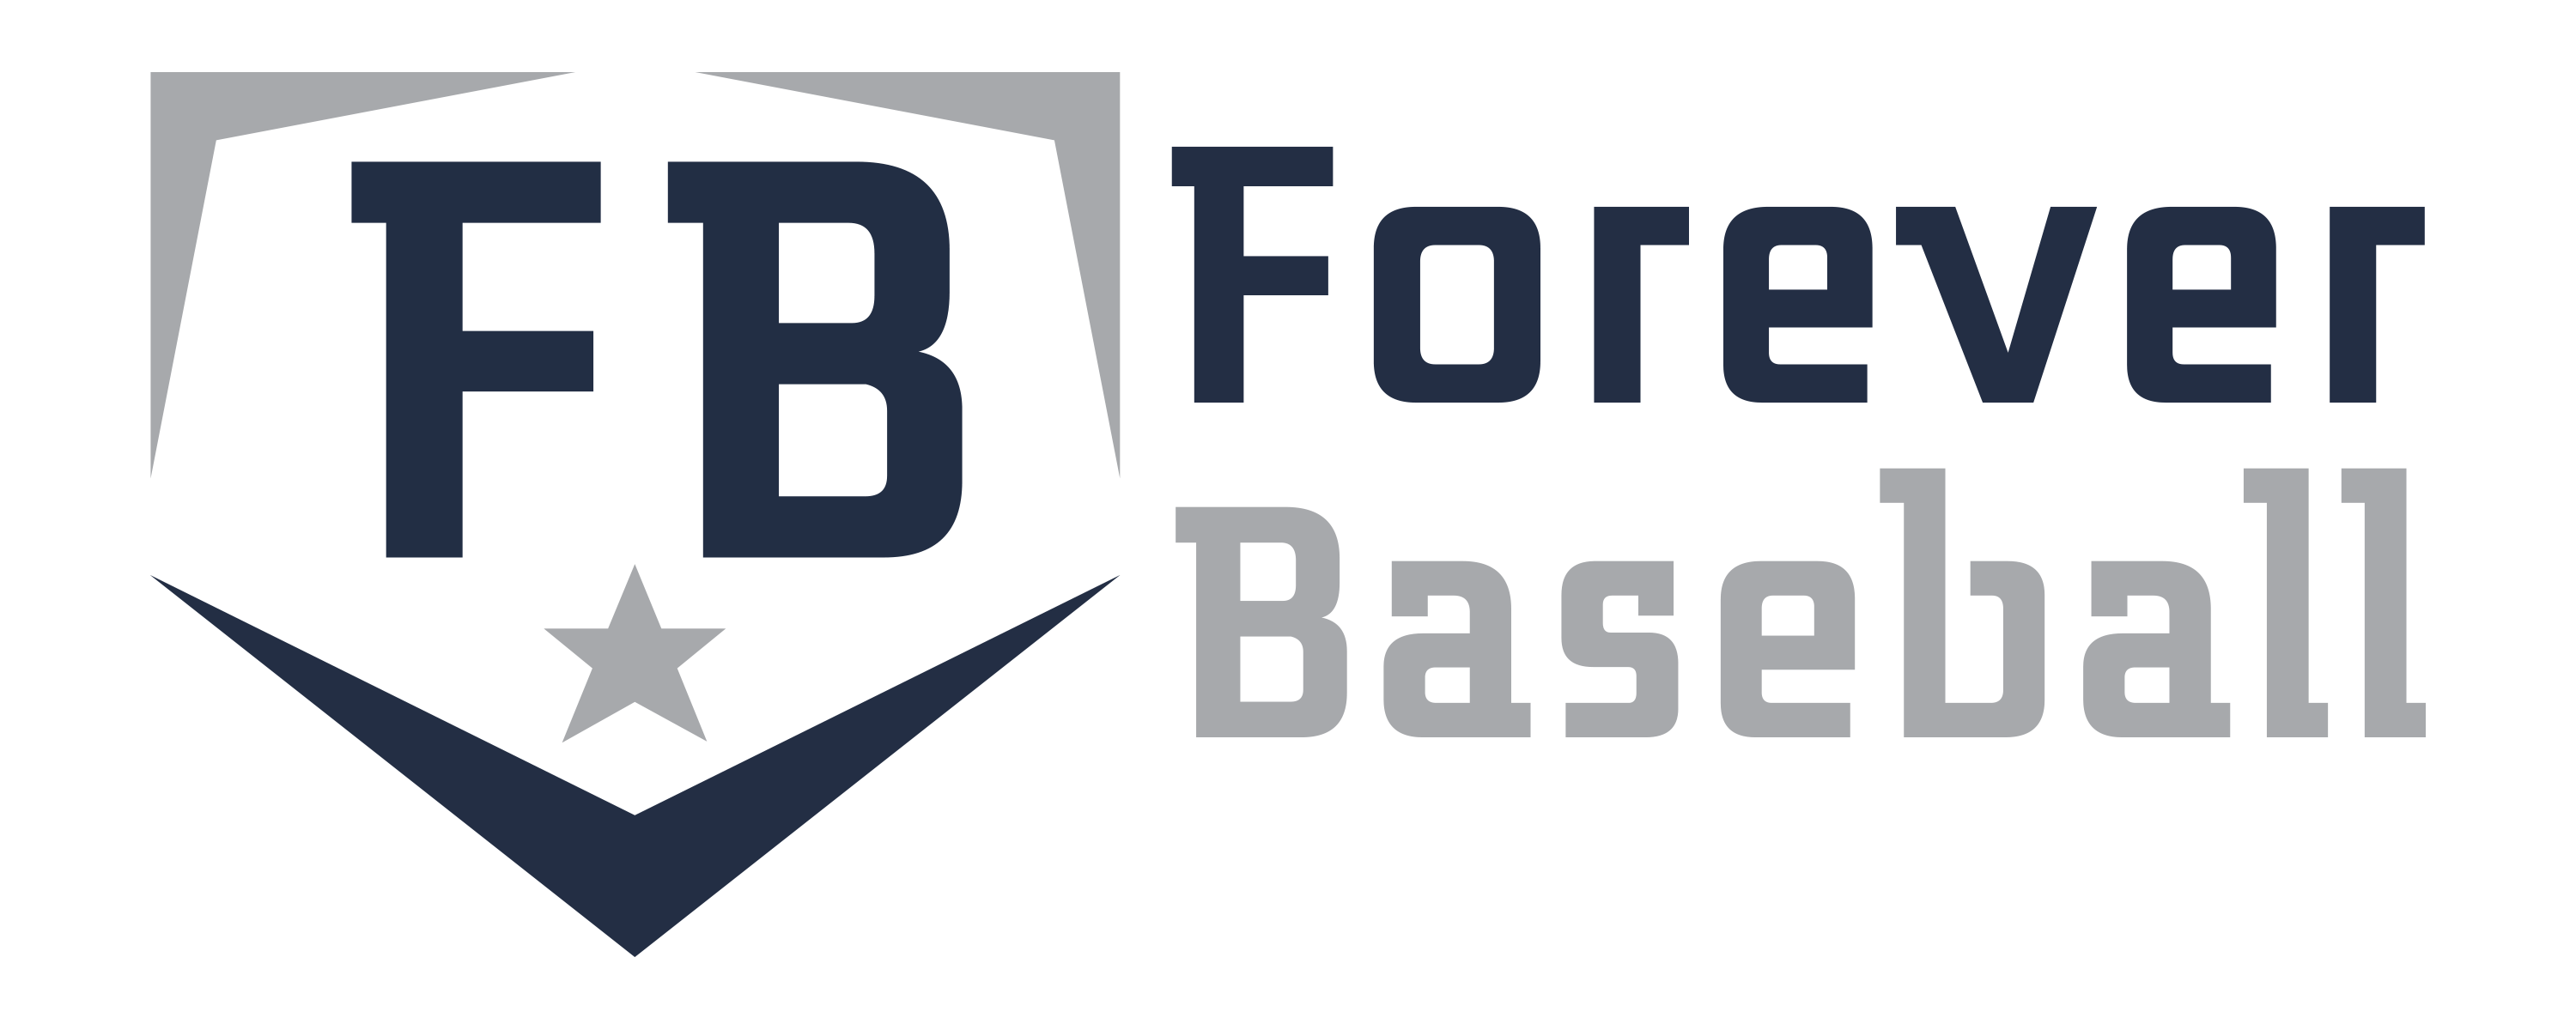 Forever Baseball _logo with words_2 color_clear background